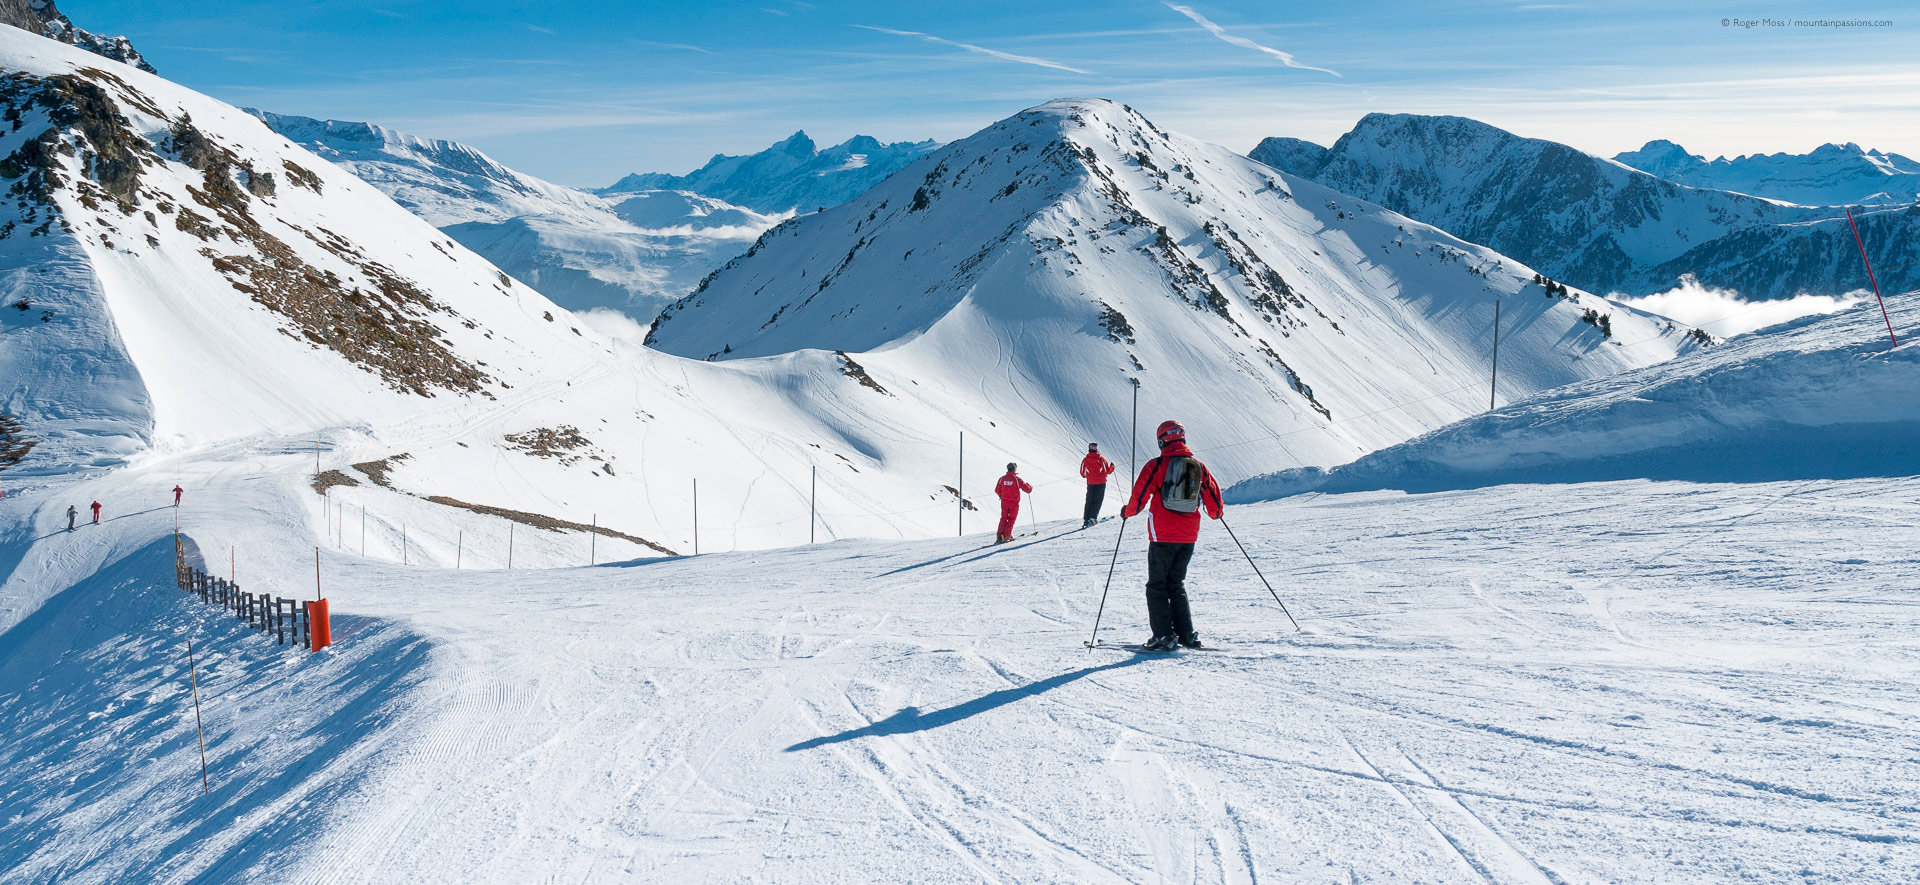 Skiers on upper piste, showing wide mountain views